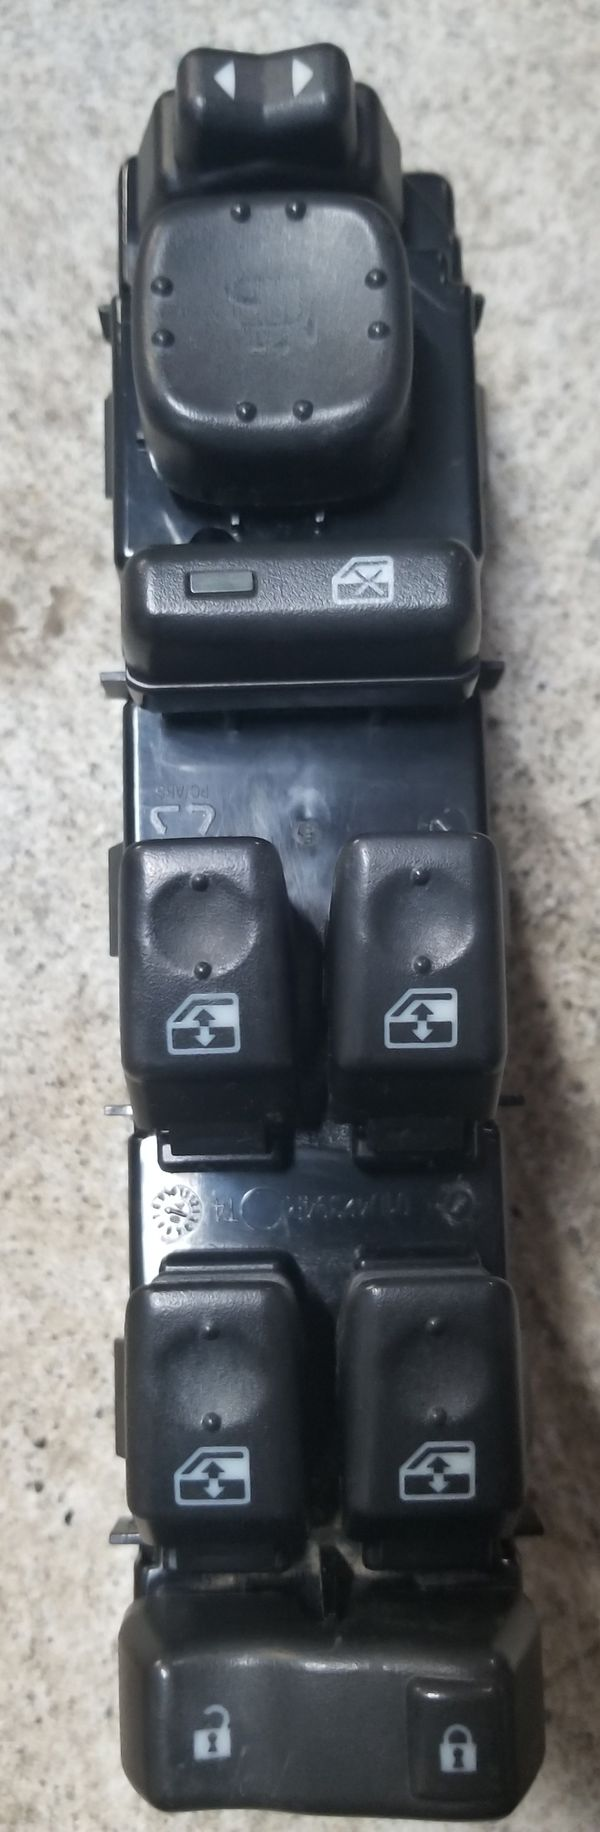 Used GM OEM 03 - 06 4 Window, Door Lock, Mirror Control For Driver Side! ONLY $40!